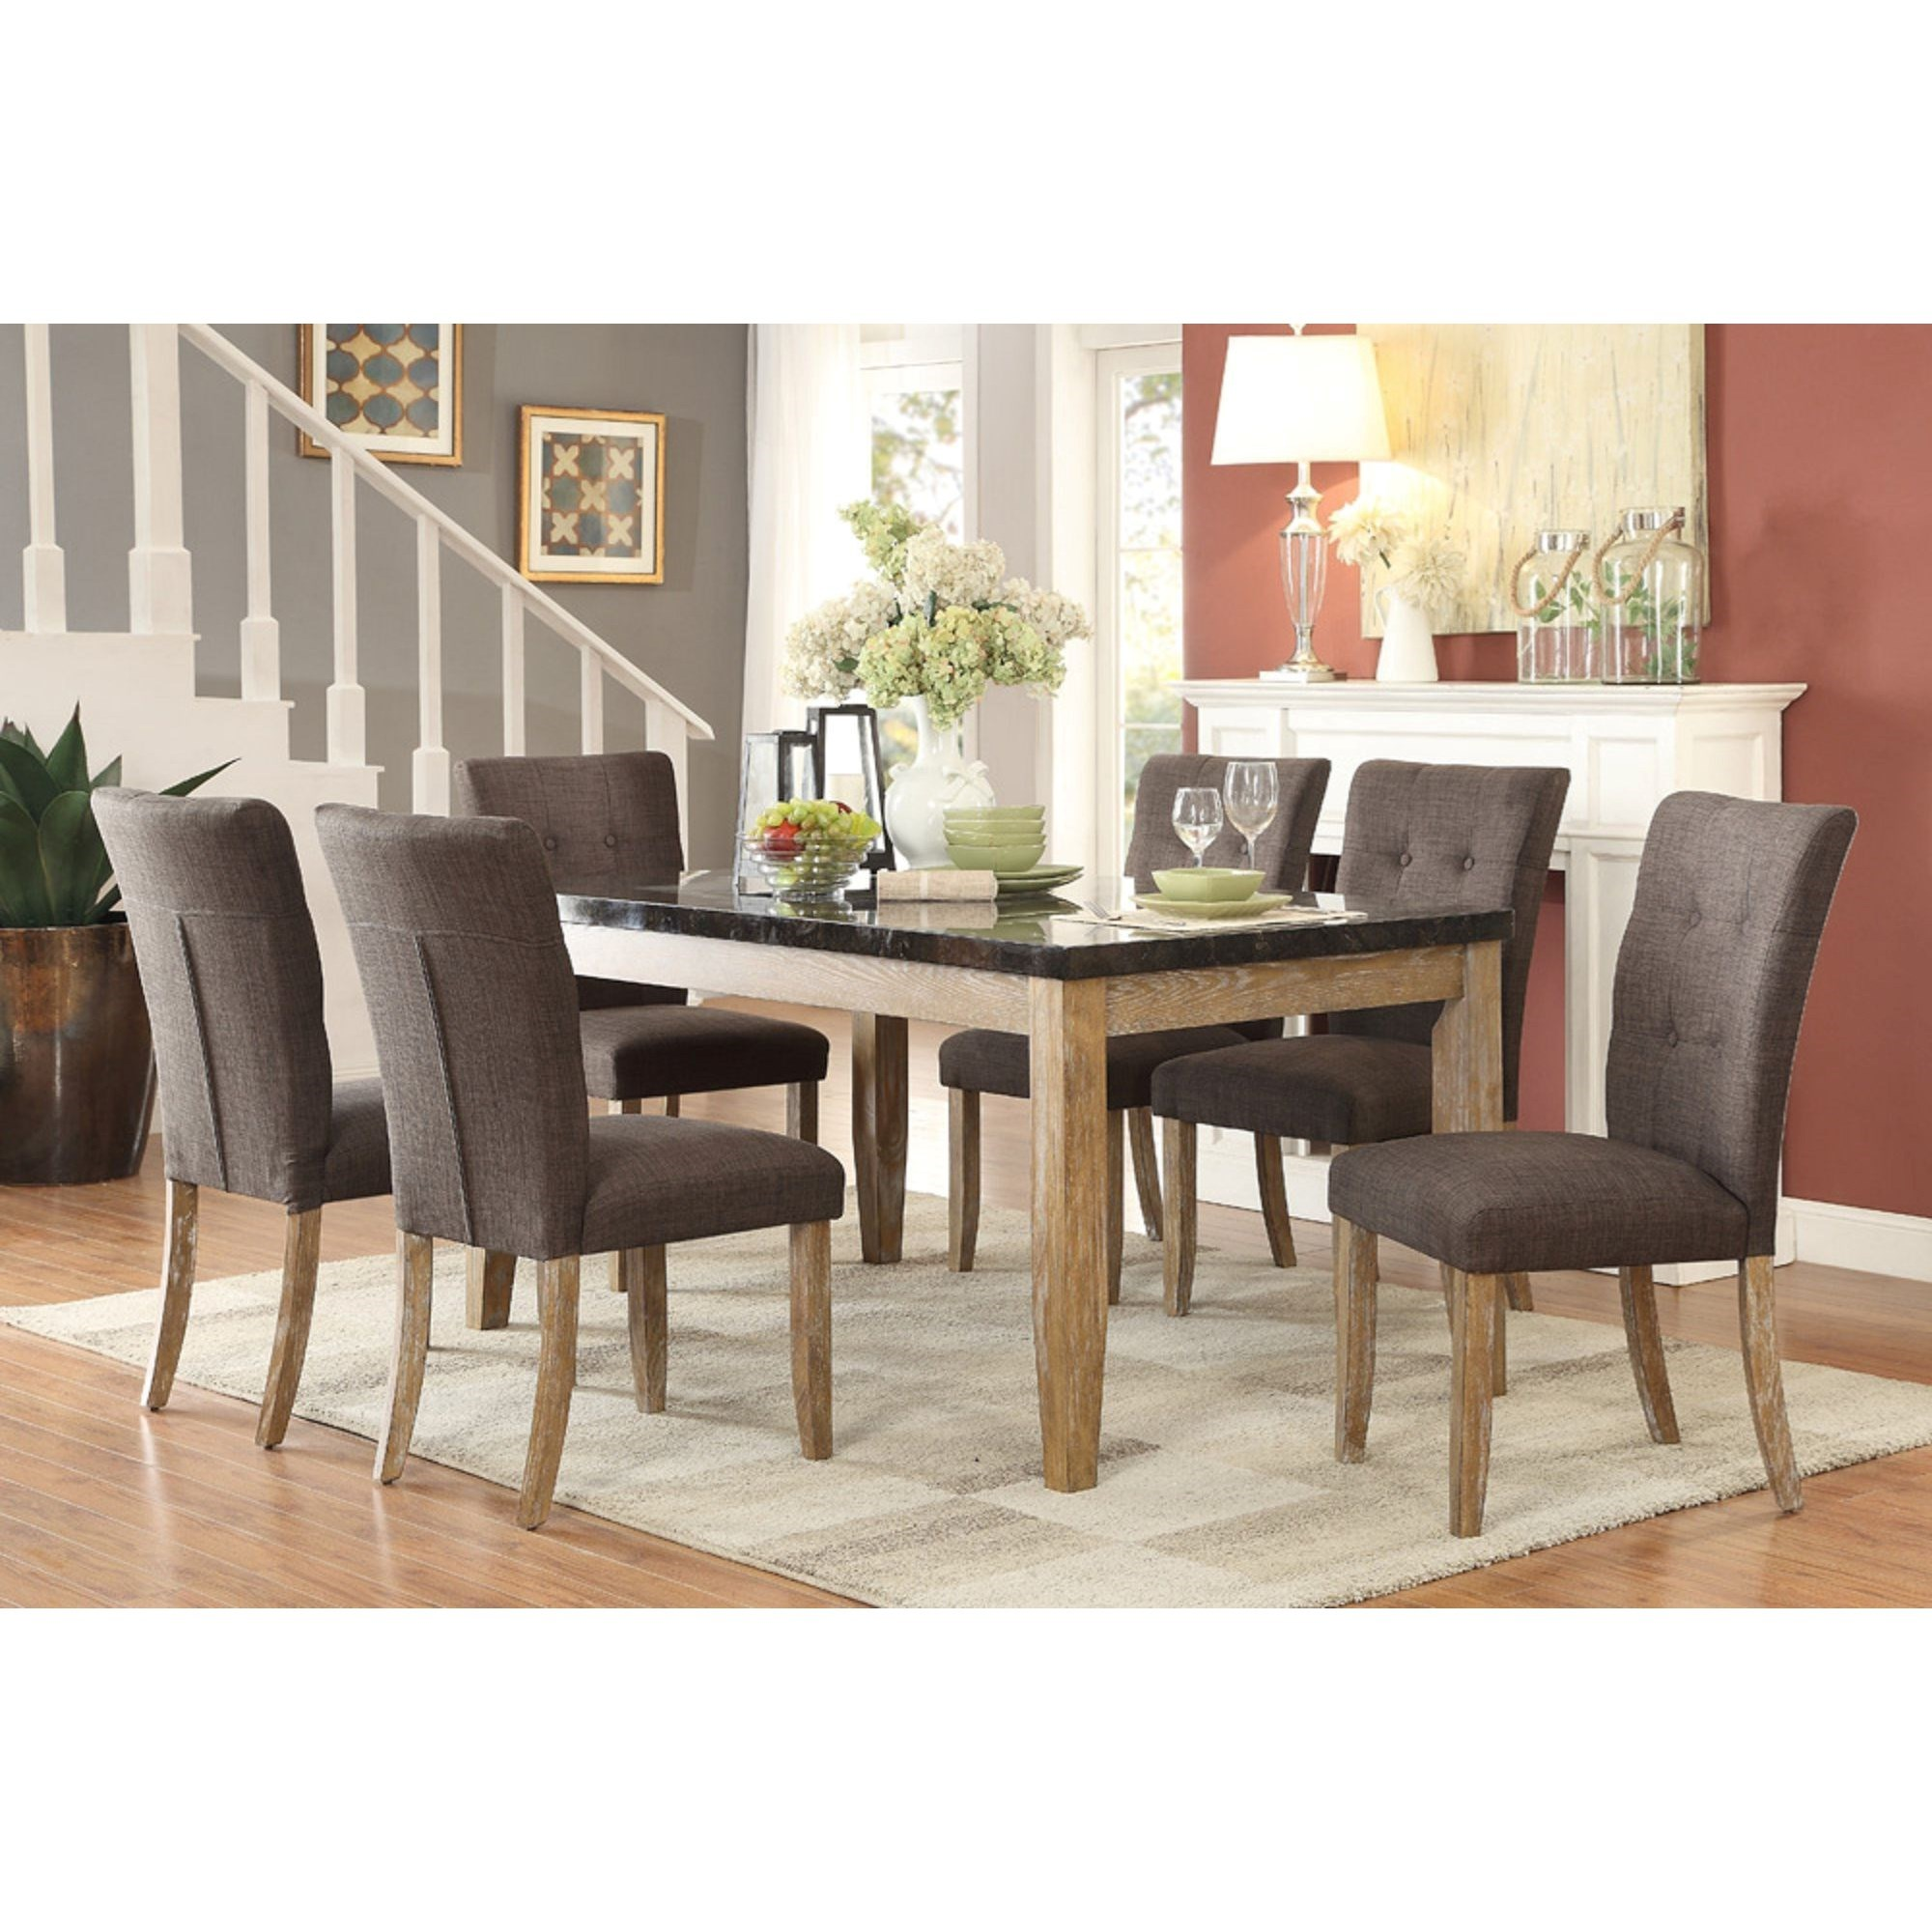 Homelegance Huron Contemporary Table and Chair Set - Item Number: 5285-64+6xS